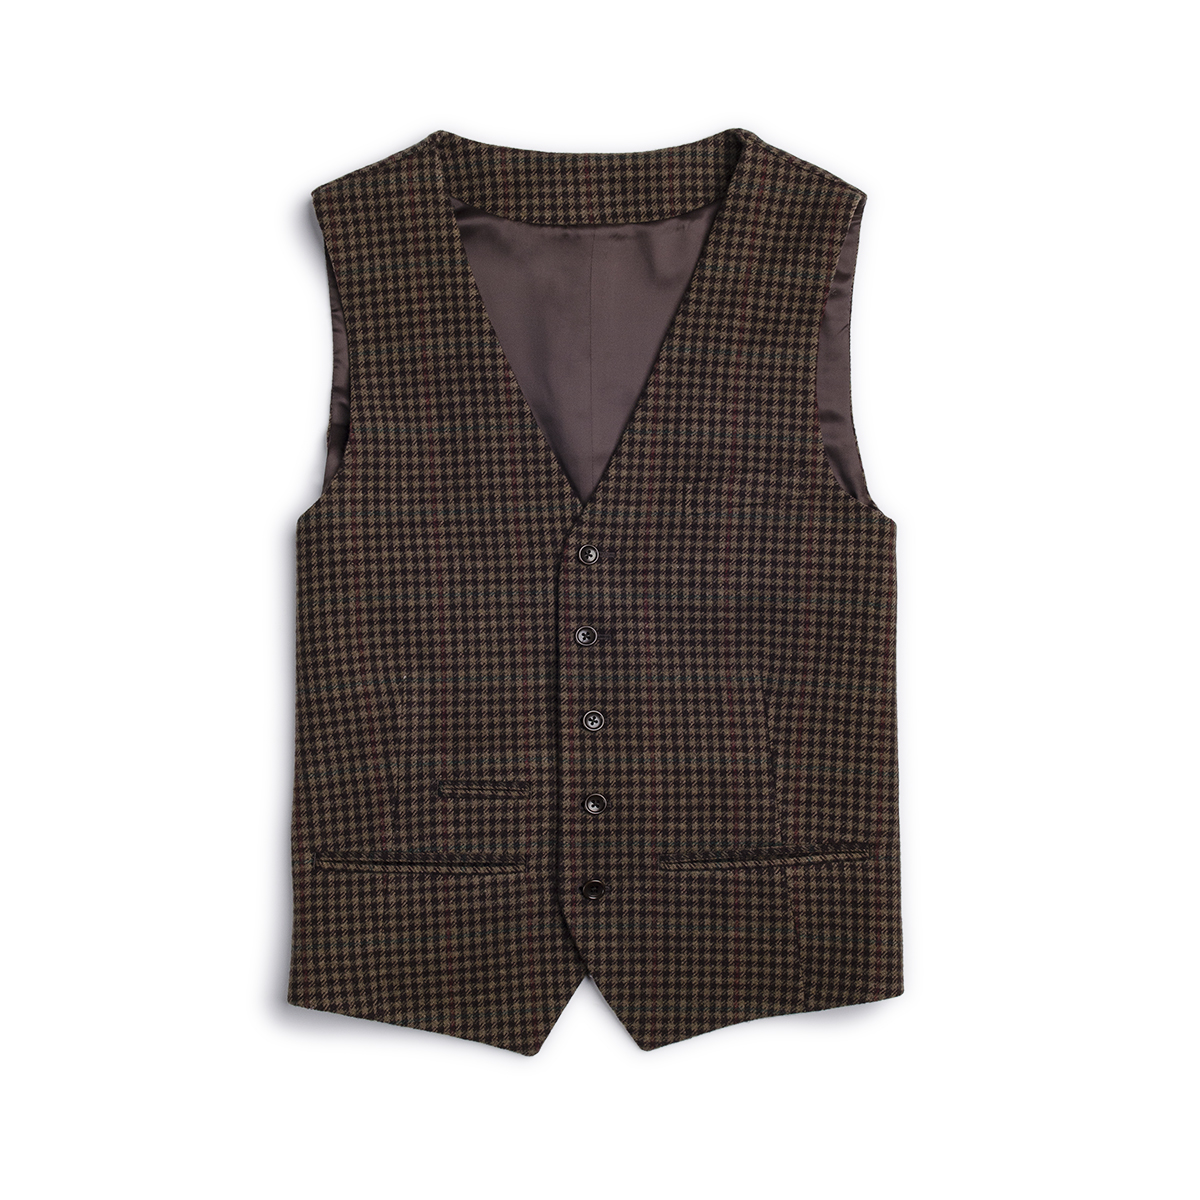 Gillet Lana Tweed Check